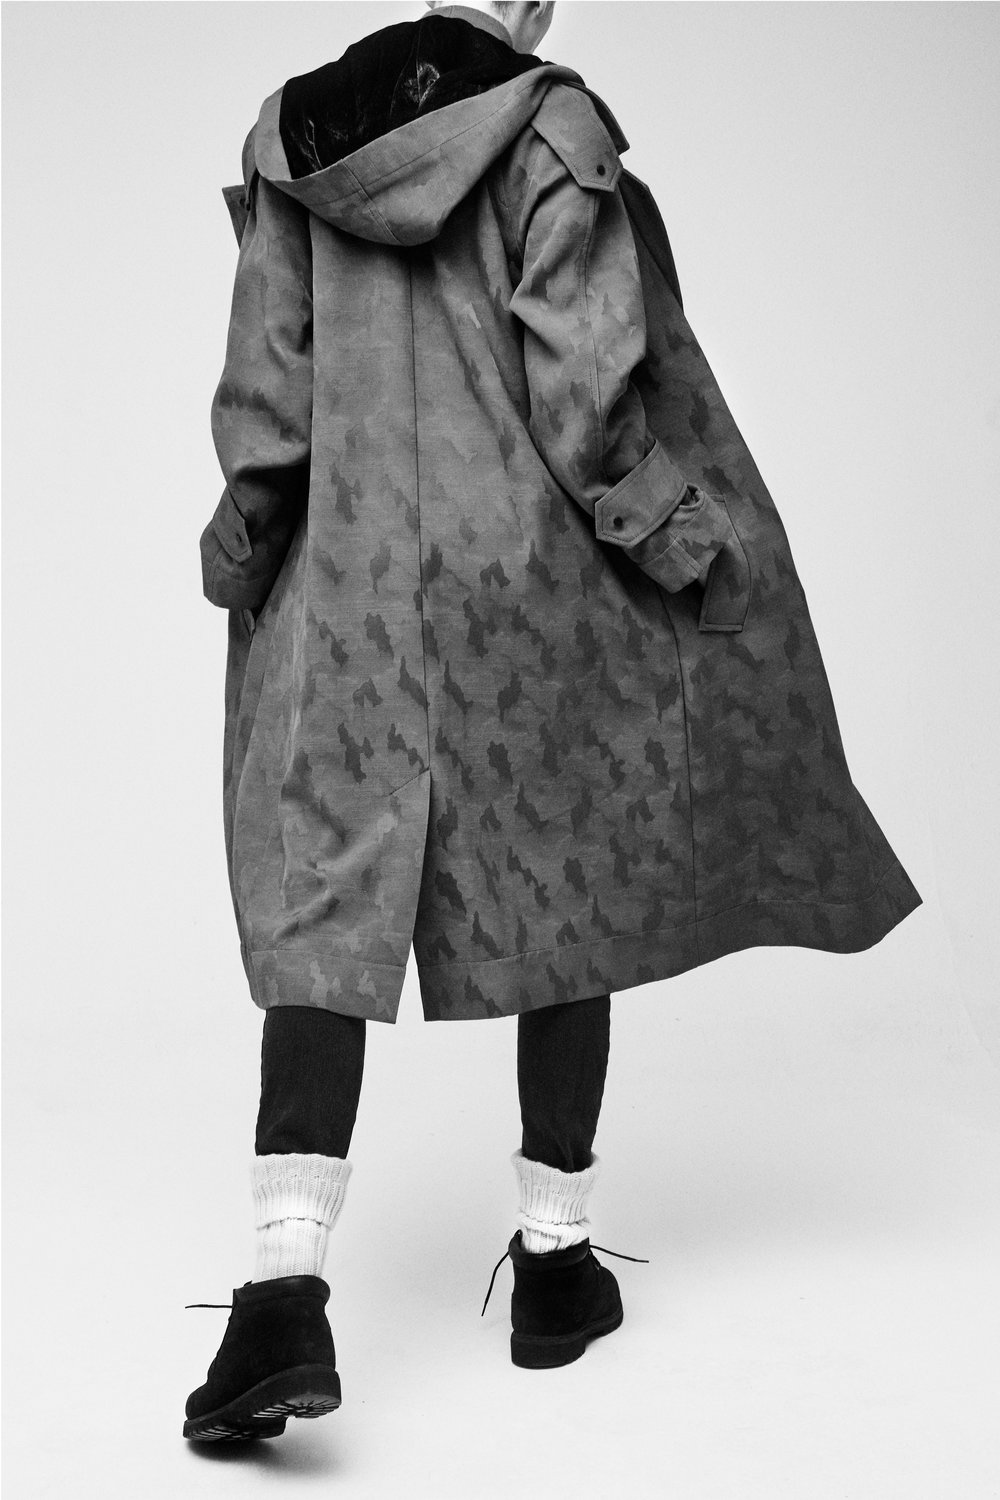 3006 ESTER COAT W REMOVABLE HOOD  - Now available to buy in the shop